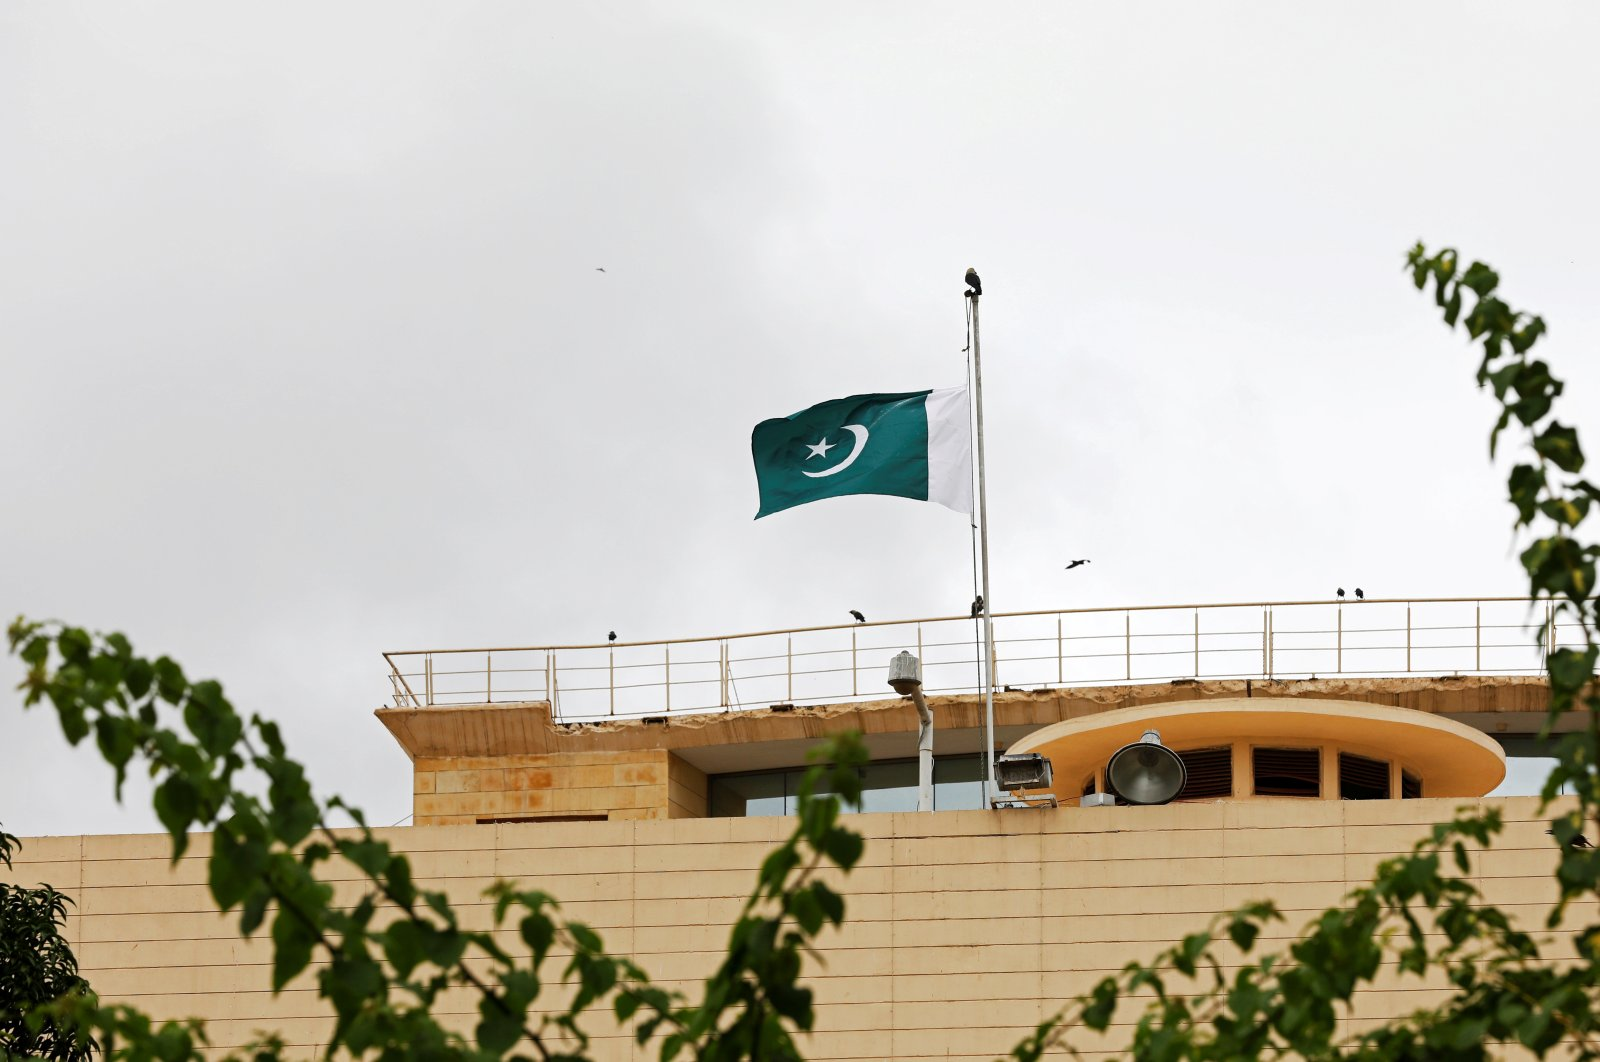 Pakistan's flag flies at half-mast to observe Black Day over India's decision to revoke the special status of Jammu and Kashmir, above the Provincial Assembly of Sindh building in Karachi, Pakistan, Aug. 15, 2019. (Reuters Photo)